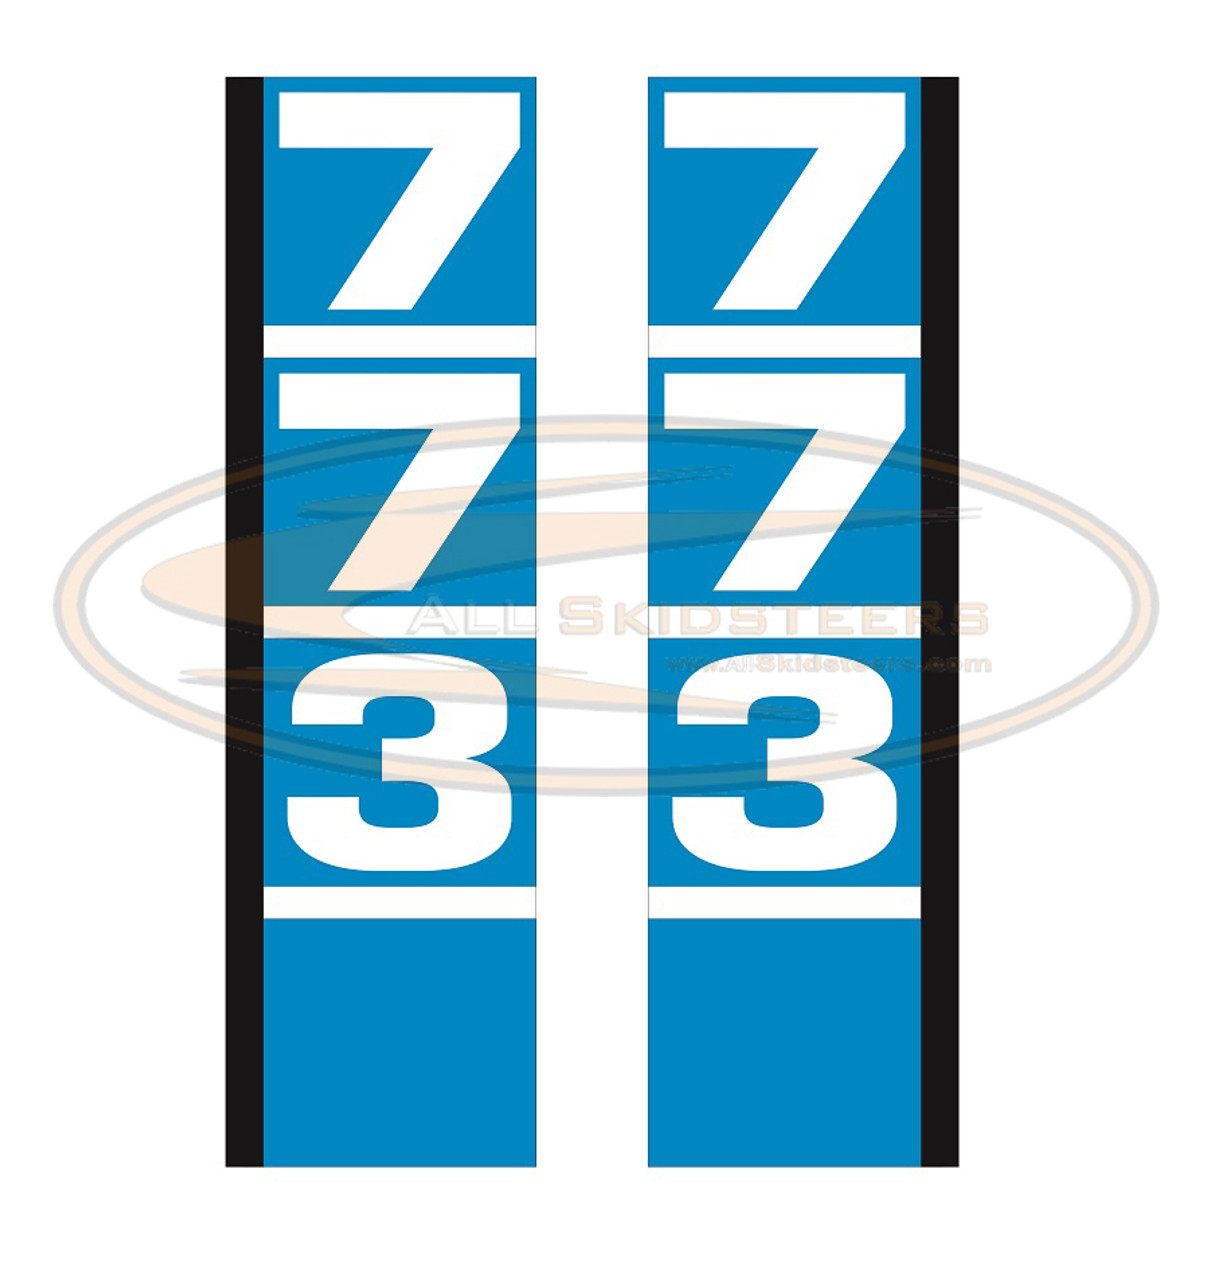 773 Decal Sticker Kit for Bobcat Skid Steer | Replaces OEM # 6708201 6708200